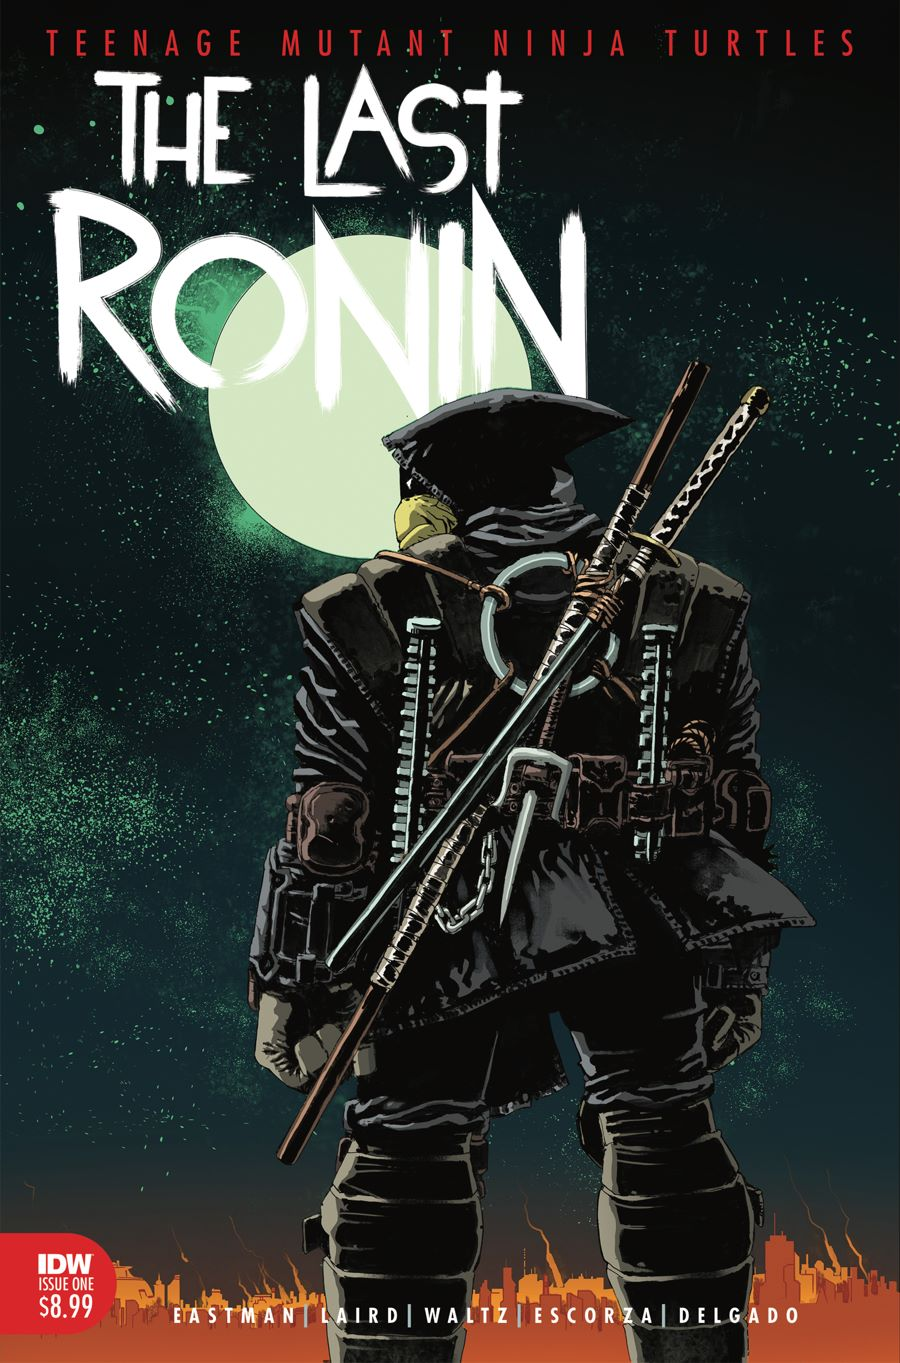 75fc763a-f3db-4ab0-99d6-a268f90d2658-1 THE LAST RONIN #1 pre-orders exceed expectations of humans and turtles alike